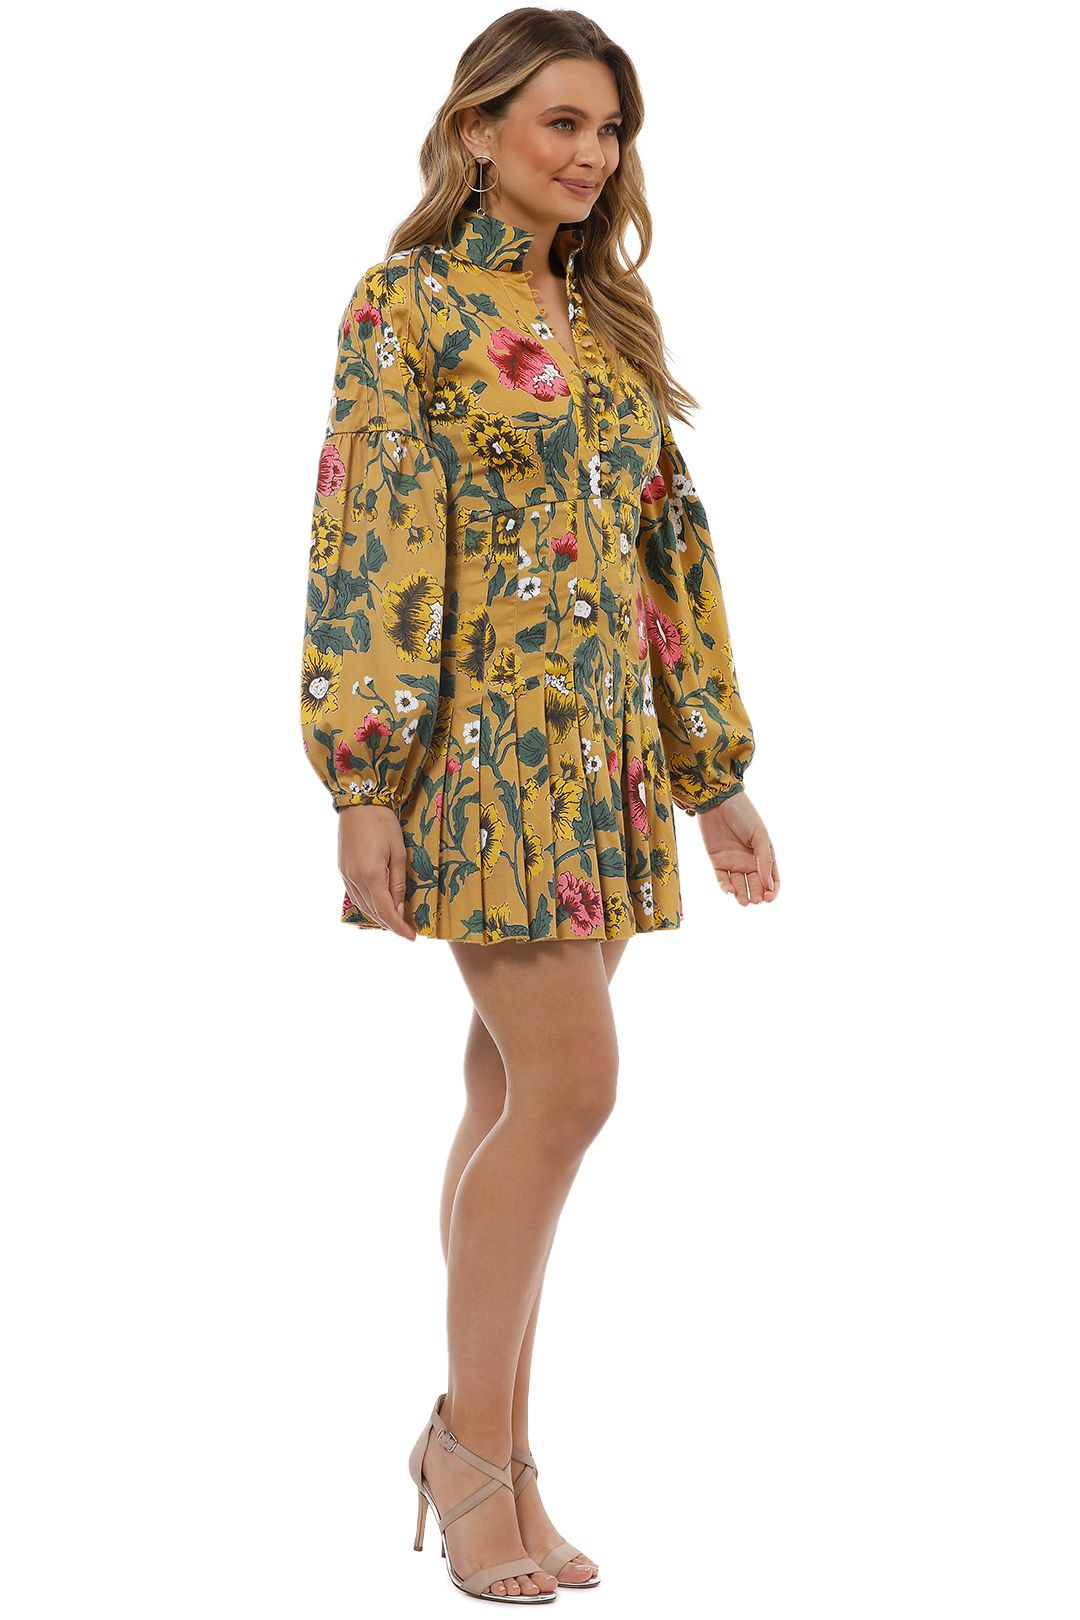 Cameo - Another Lover LS Dress - Side